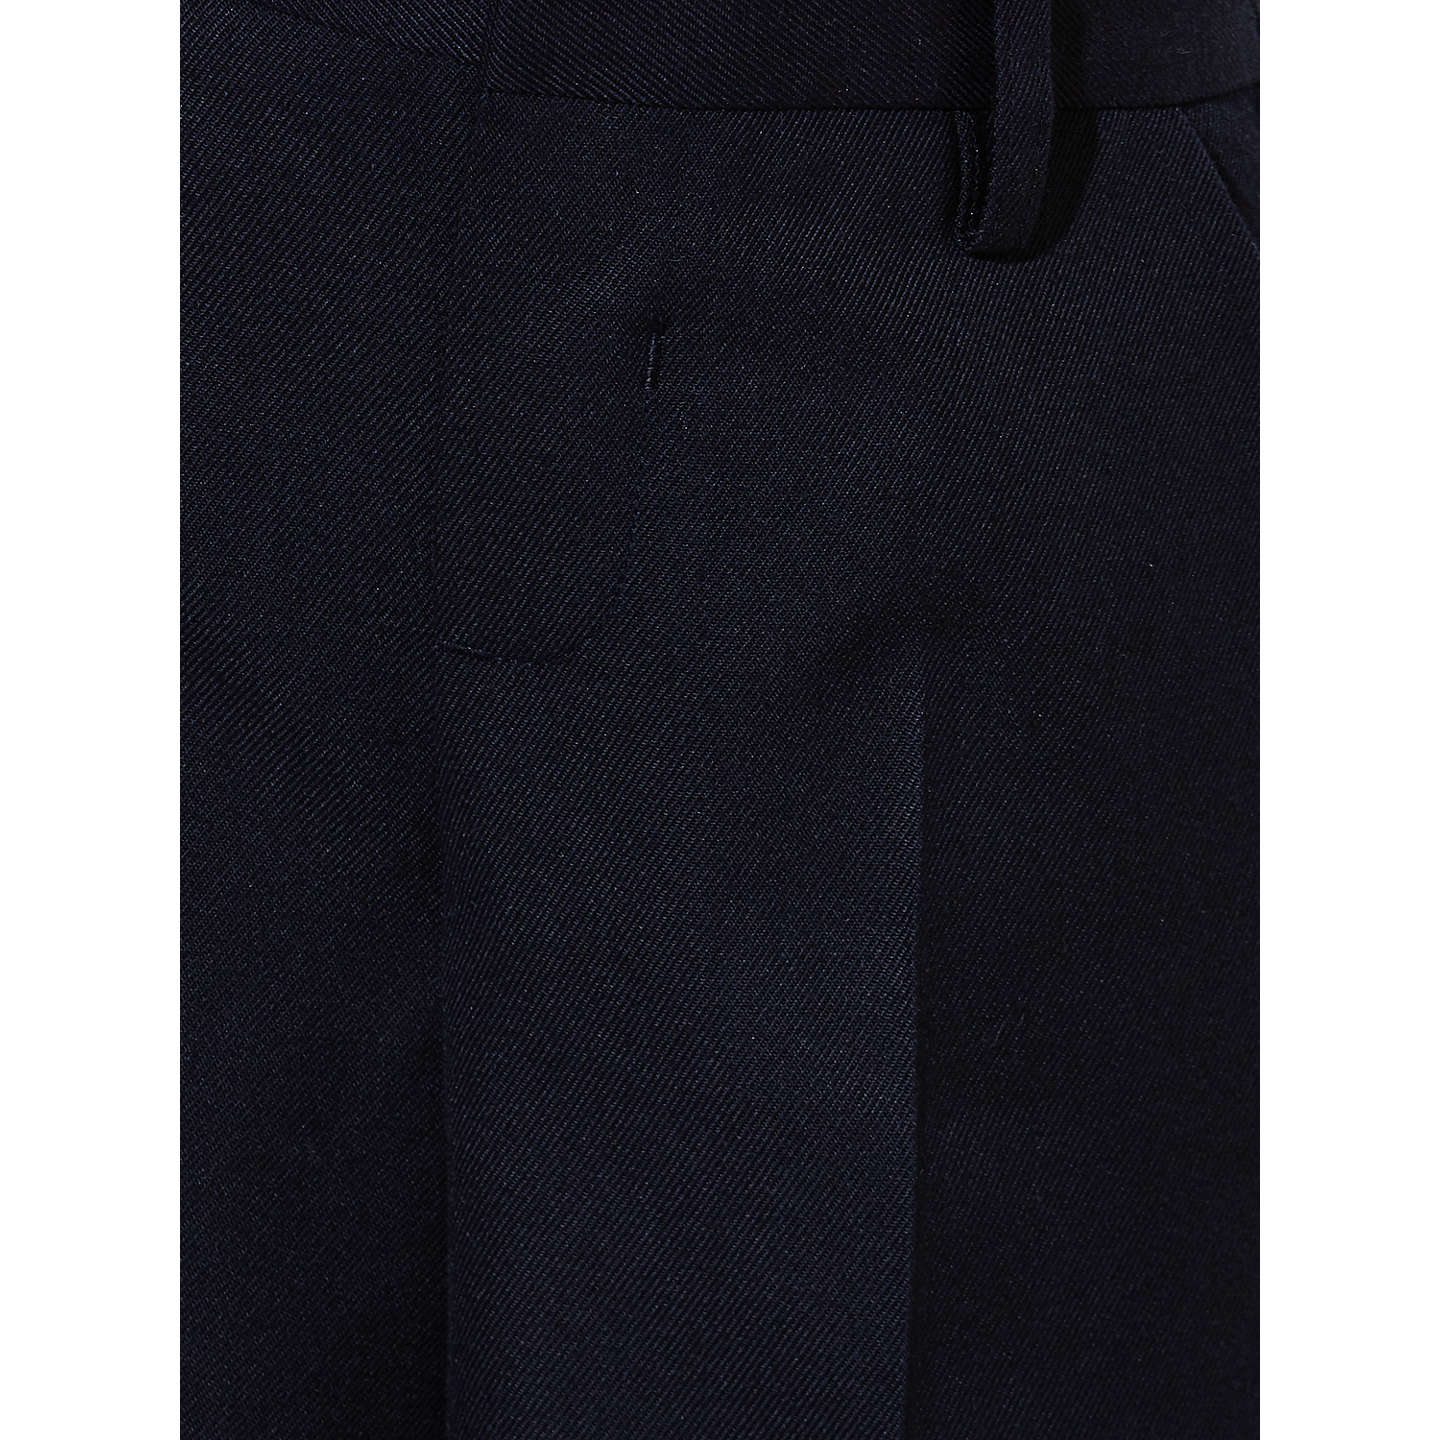 BuyJohn Lewis Boys' Easy Care Bermuda Length School Shorts, Navy, 4 years Online at johnlewis.com